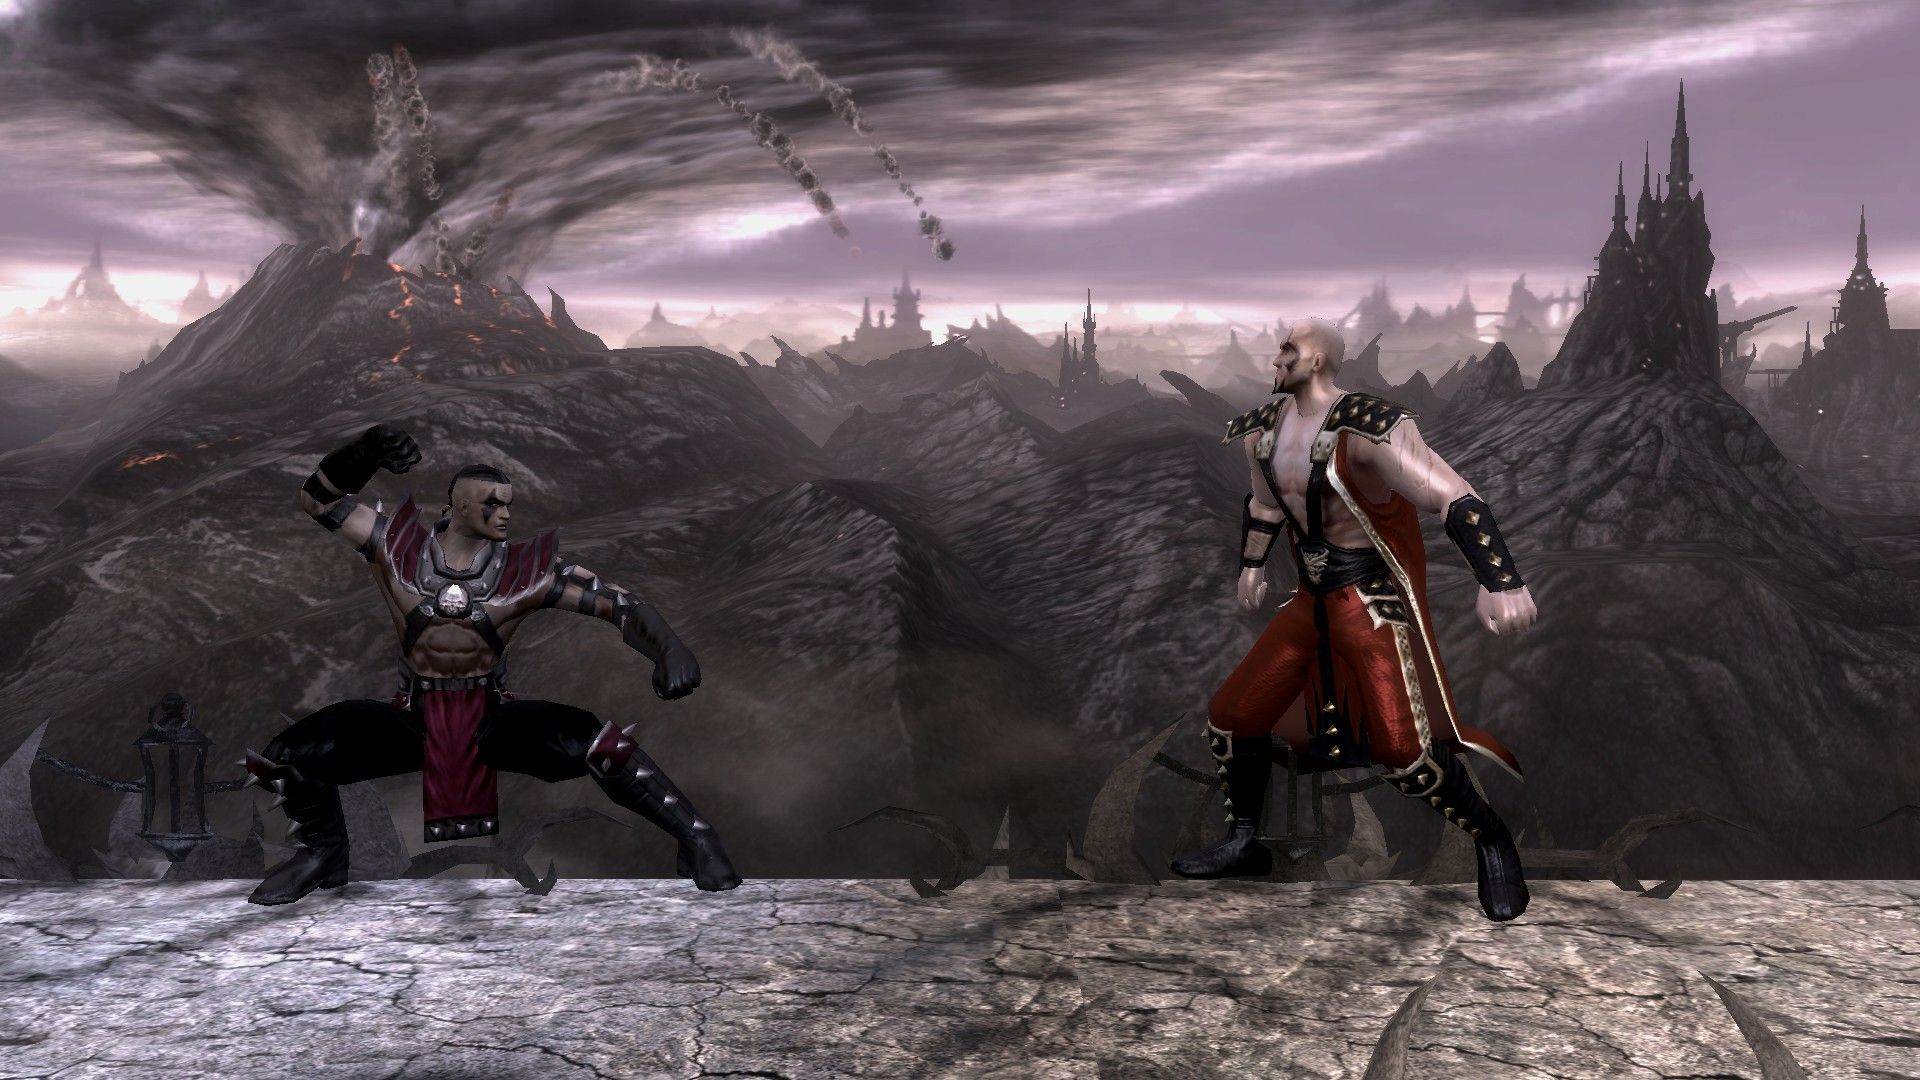 Reiko and Daegon's cameo appearance in the Pit arena of Mortal